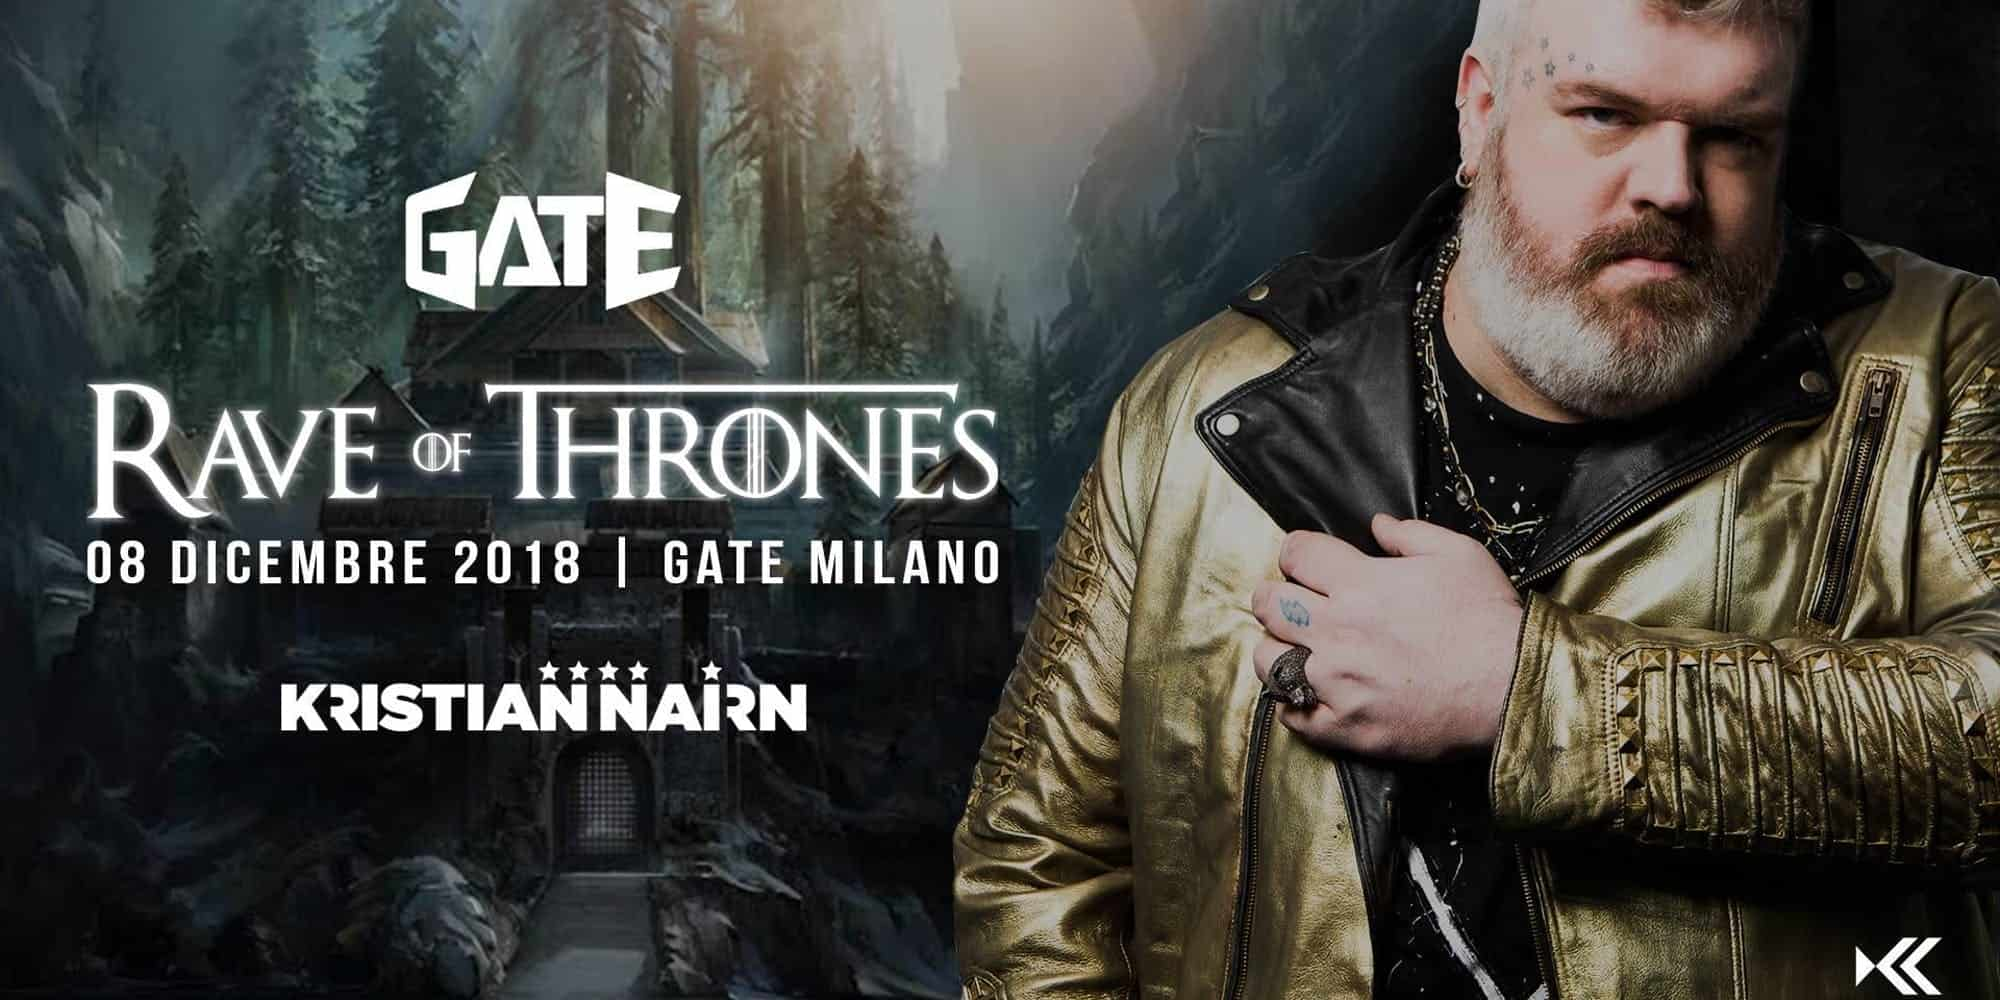 Rave of thrones milano